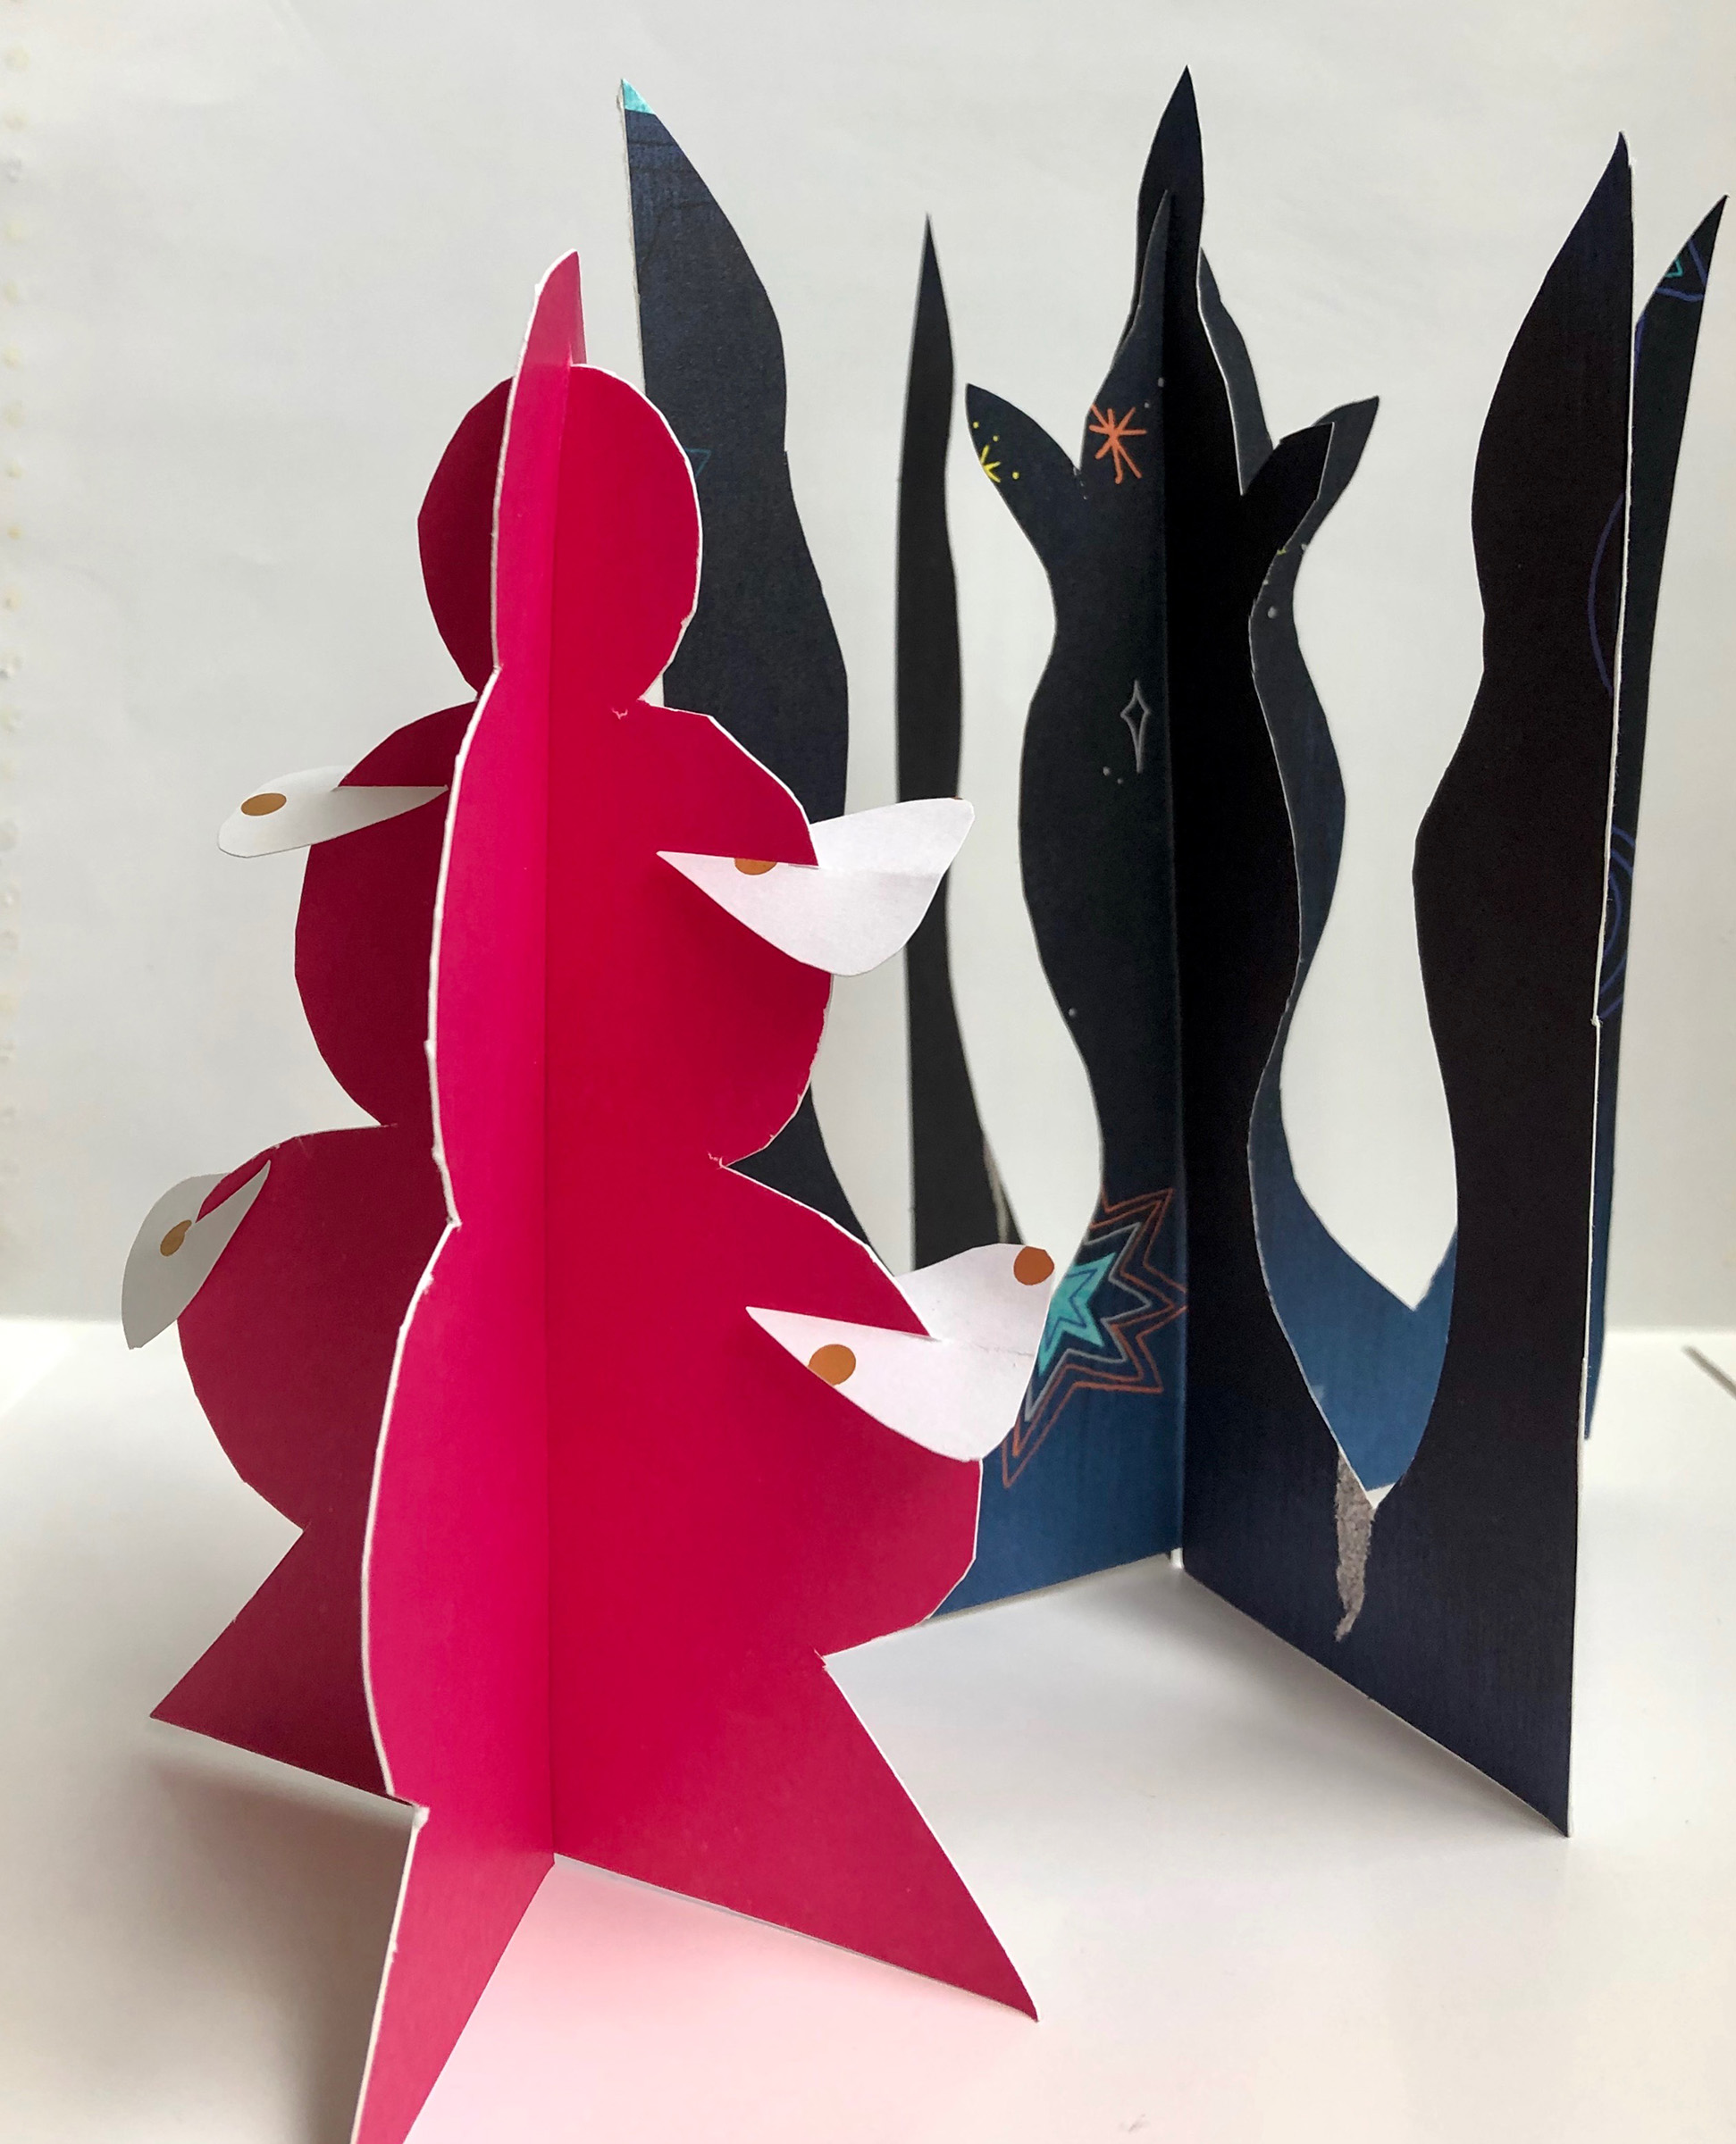 Two paper sculptures. Left sculpture is red and shapes like a tree. The one behind it to it's right is blue and looks like a trident spearhead.